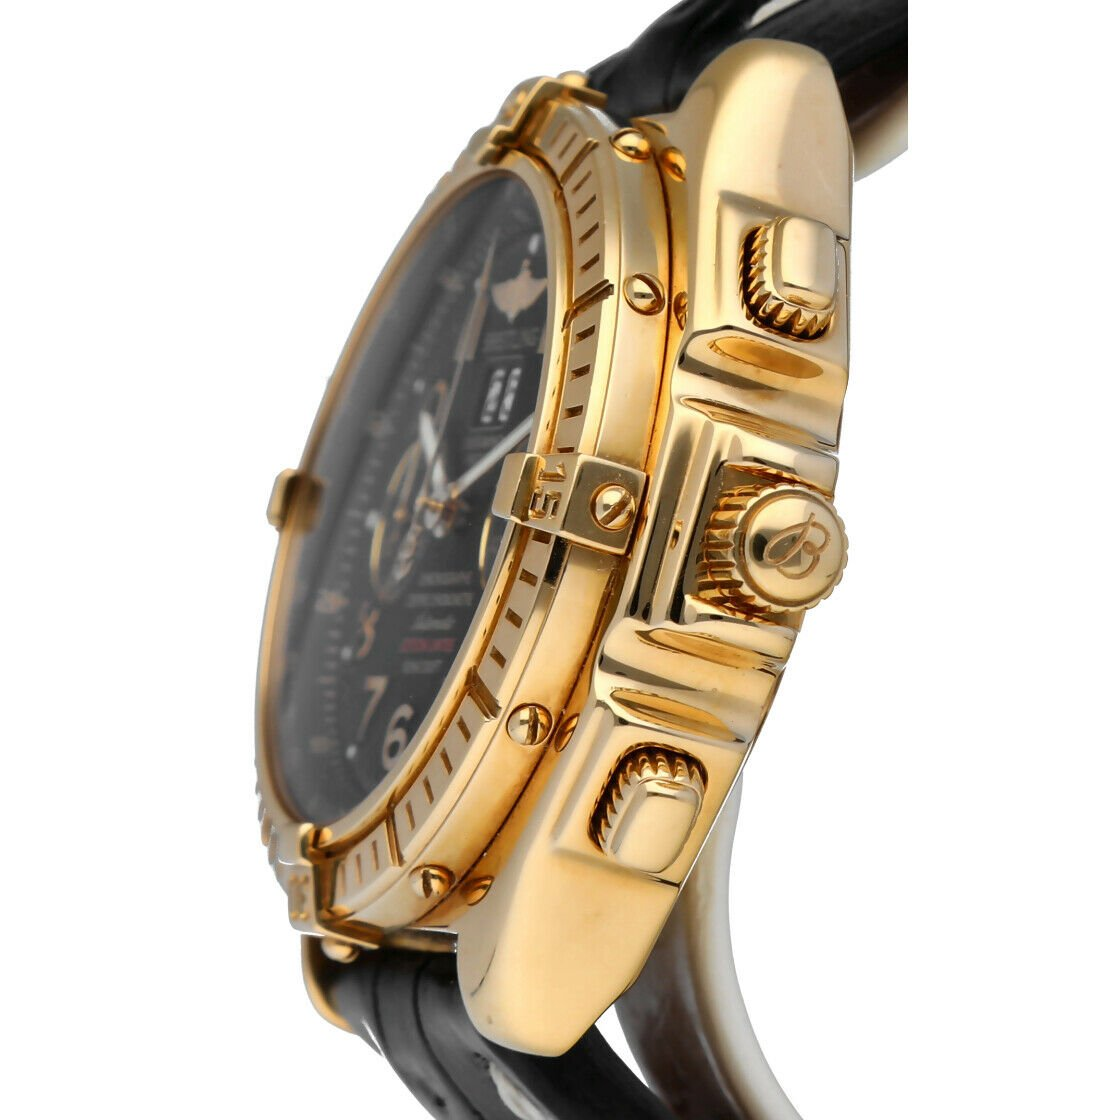 Breitling K44356 Crosswind 18k Yellow Gold Limited Edition Automatic Mens Watch 133527984163 3